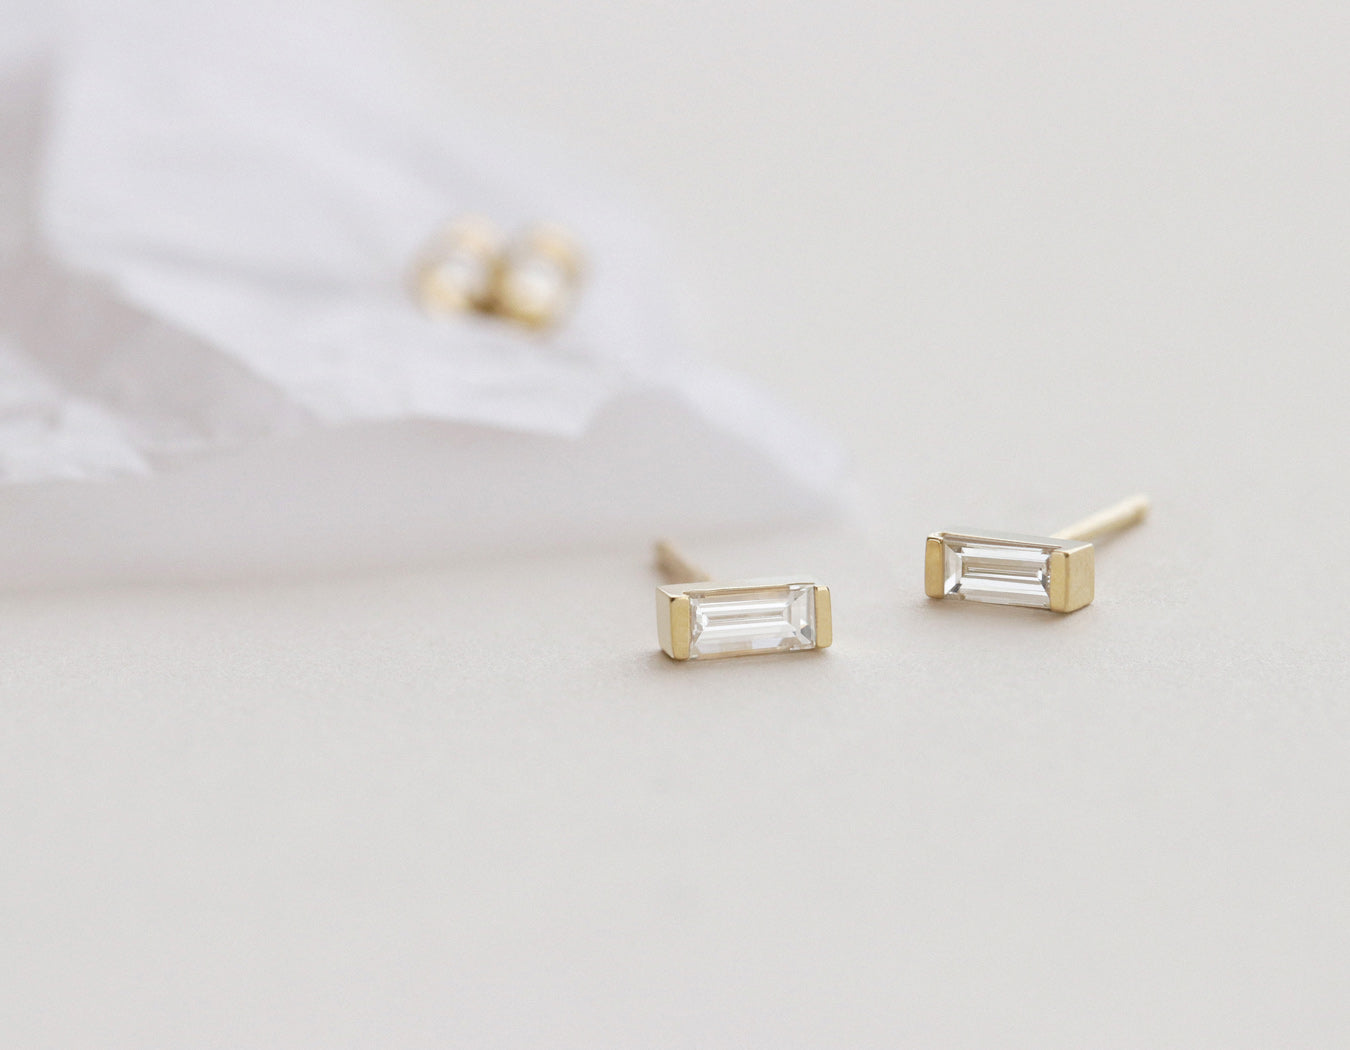 Close up of minimalist Baguette Diamond Earrings from Vrai and Oro in 14k yellow gold